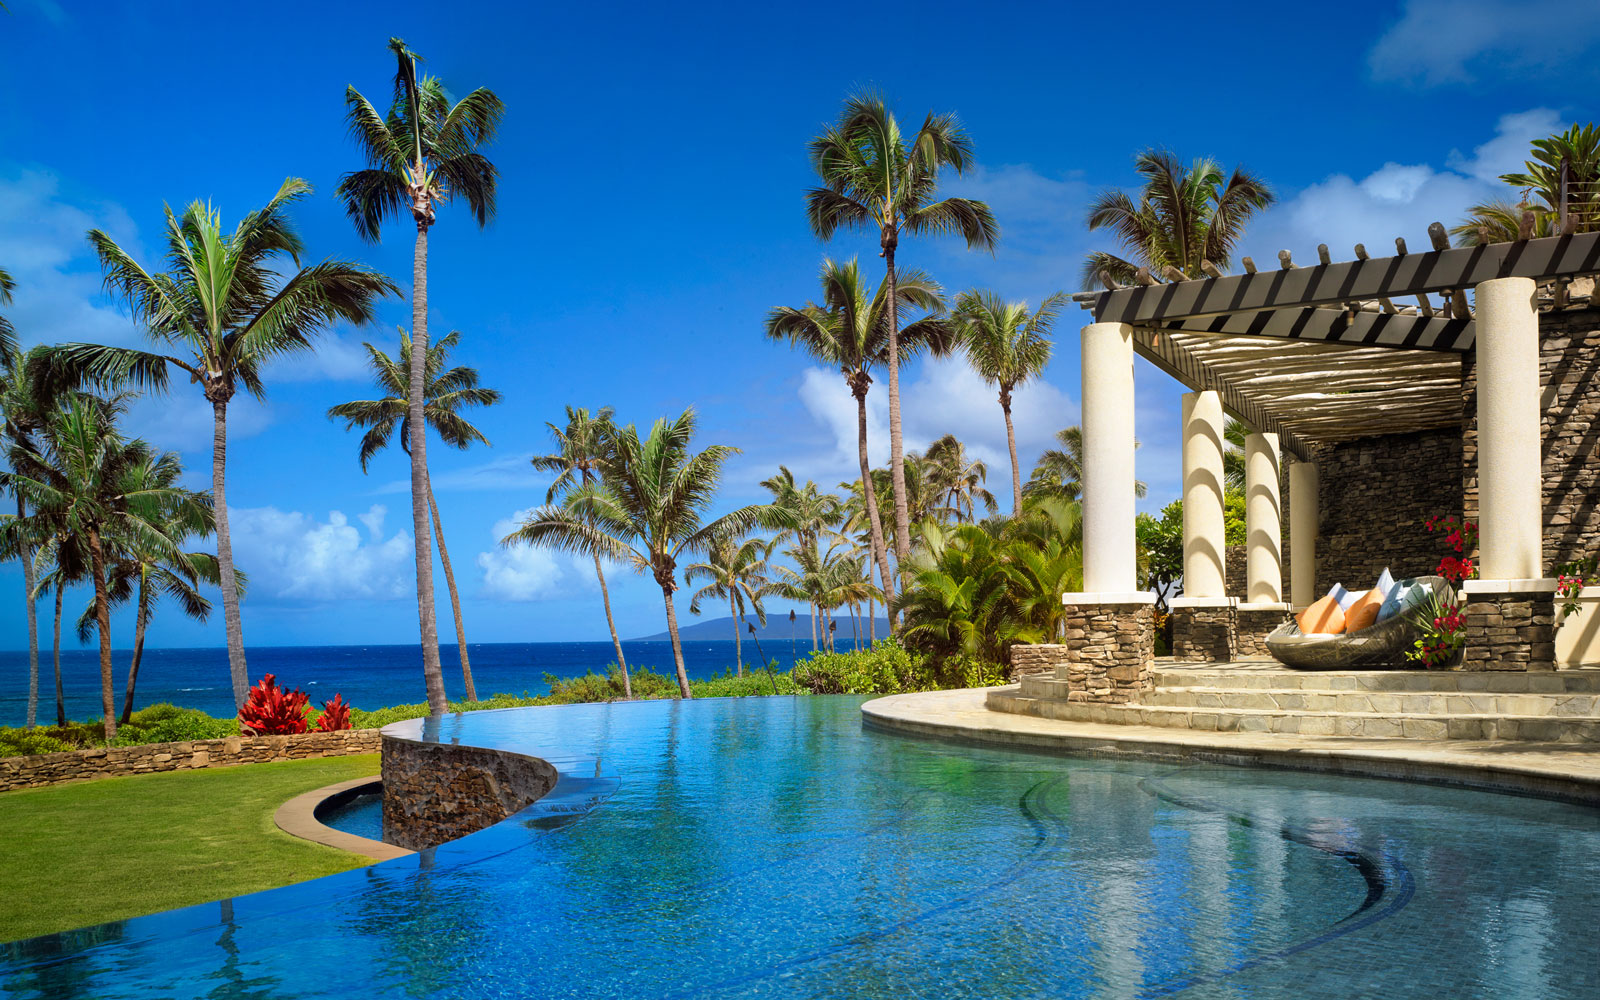 3. Montage Kapalua Bay in Hawaii